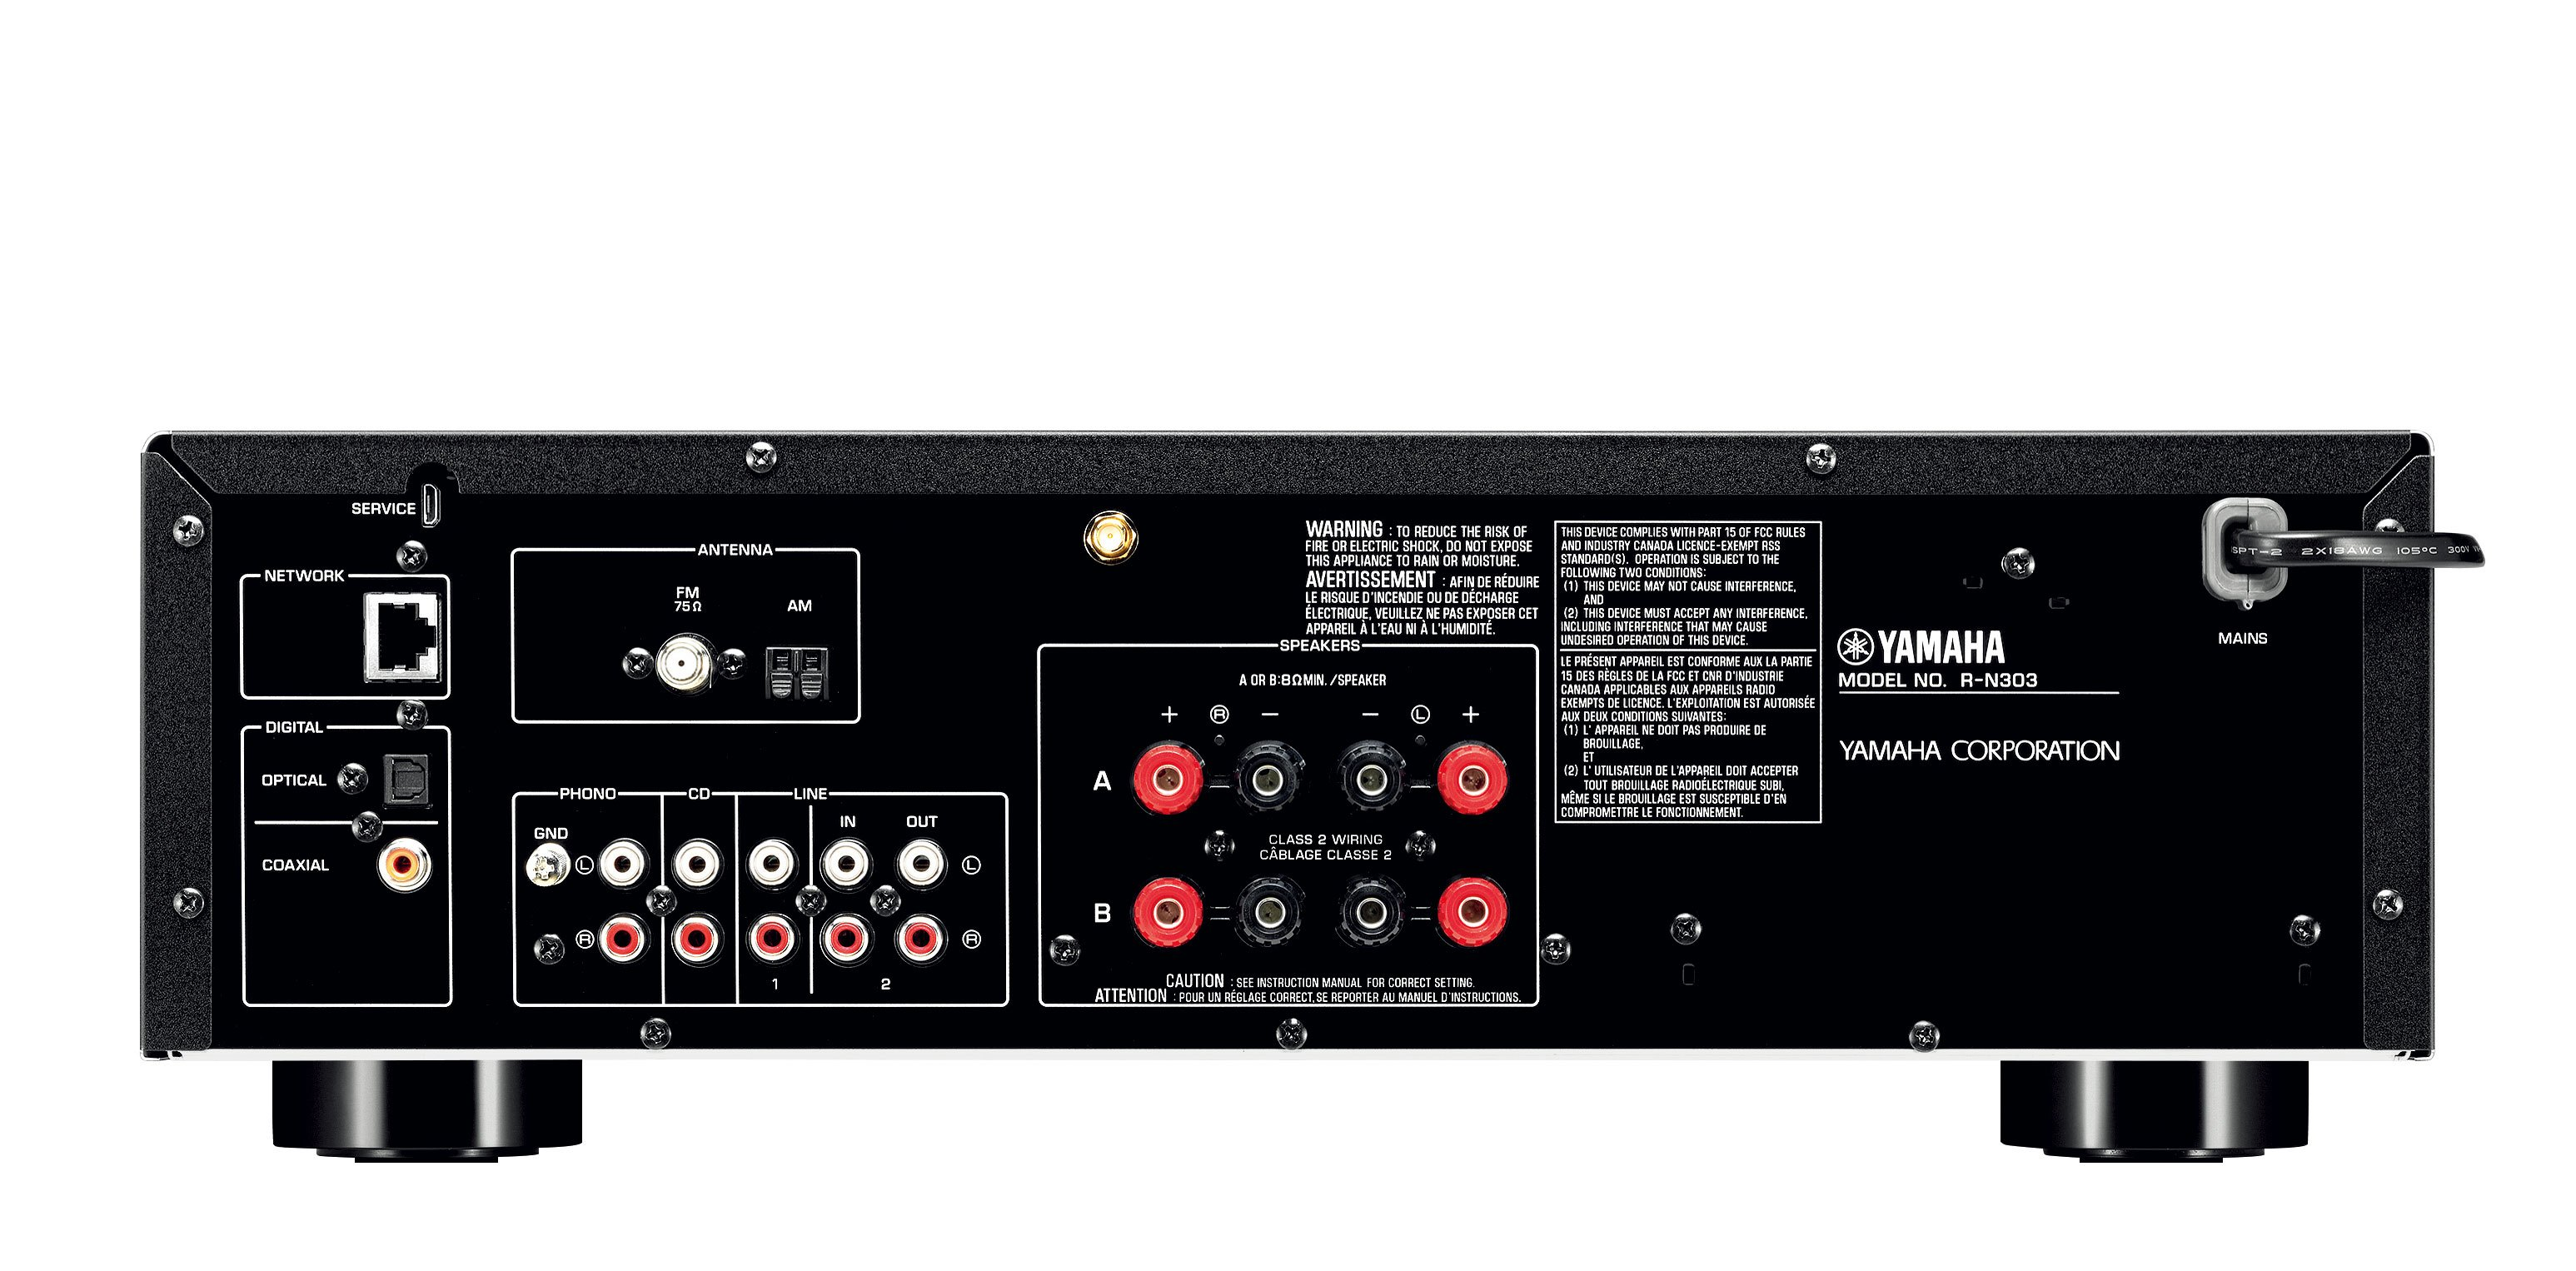 R-N303 Network Stereo Receiver - Overview - Hi-Fi Components